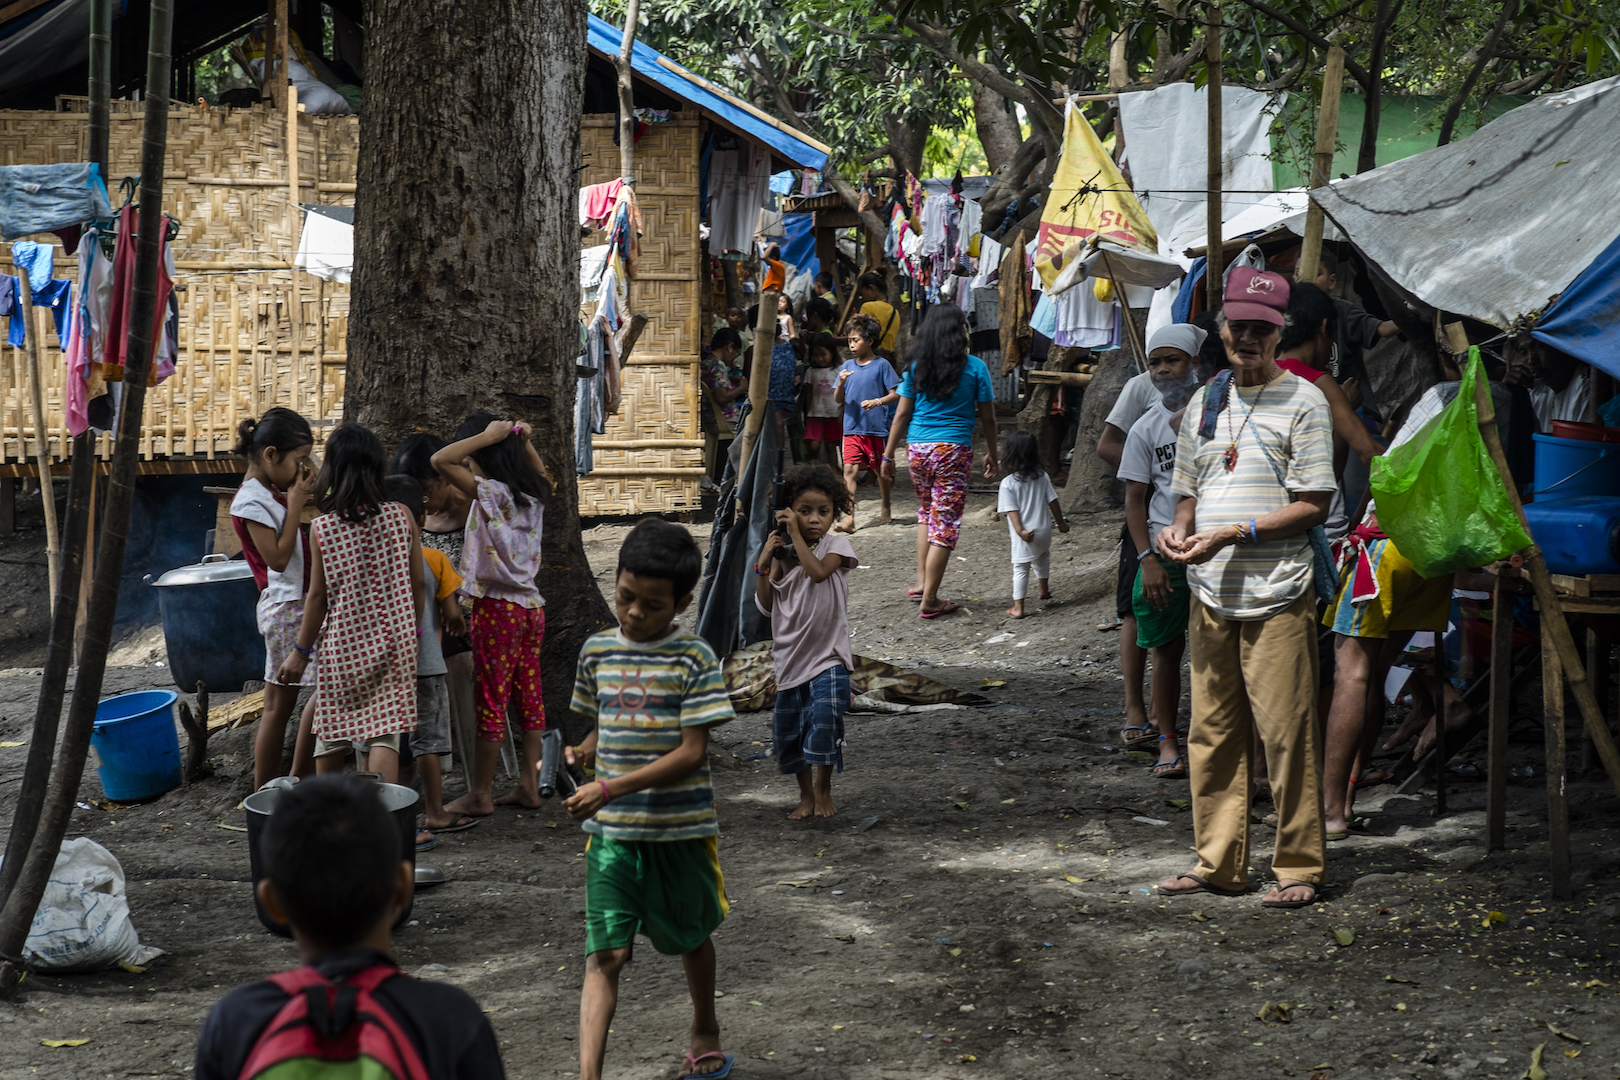 A camp in Davao for indigenous people displaced by violence in Mindanao, Philippines, in January 2016